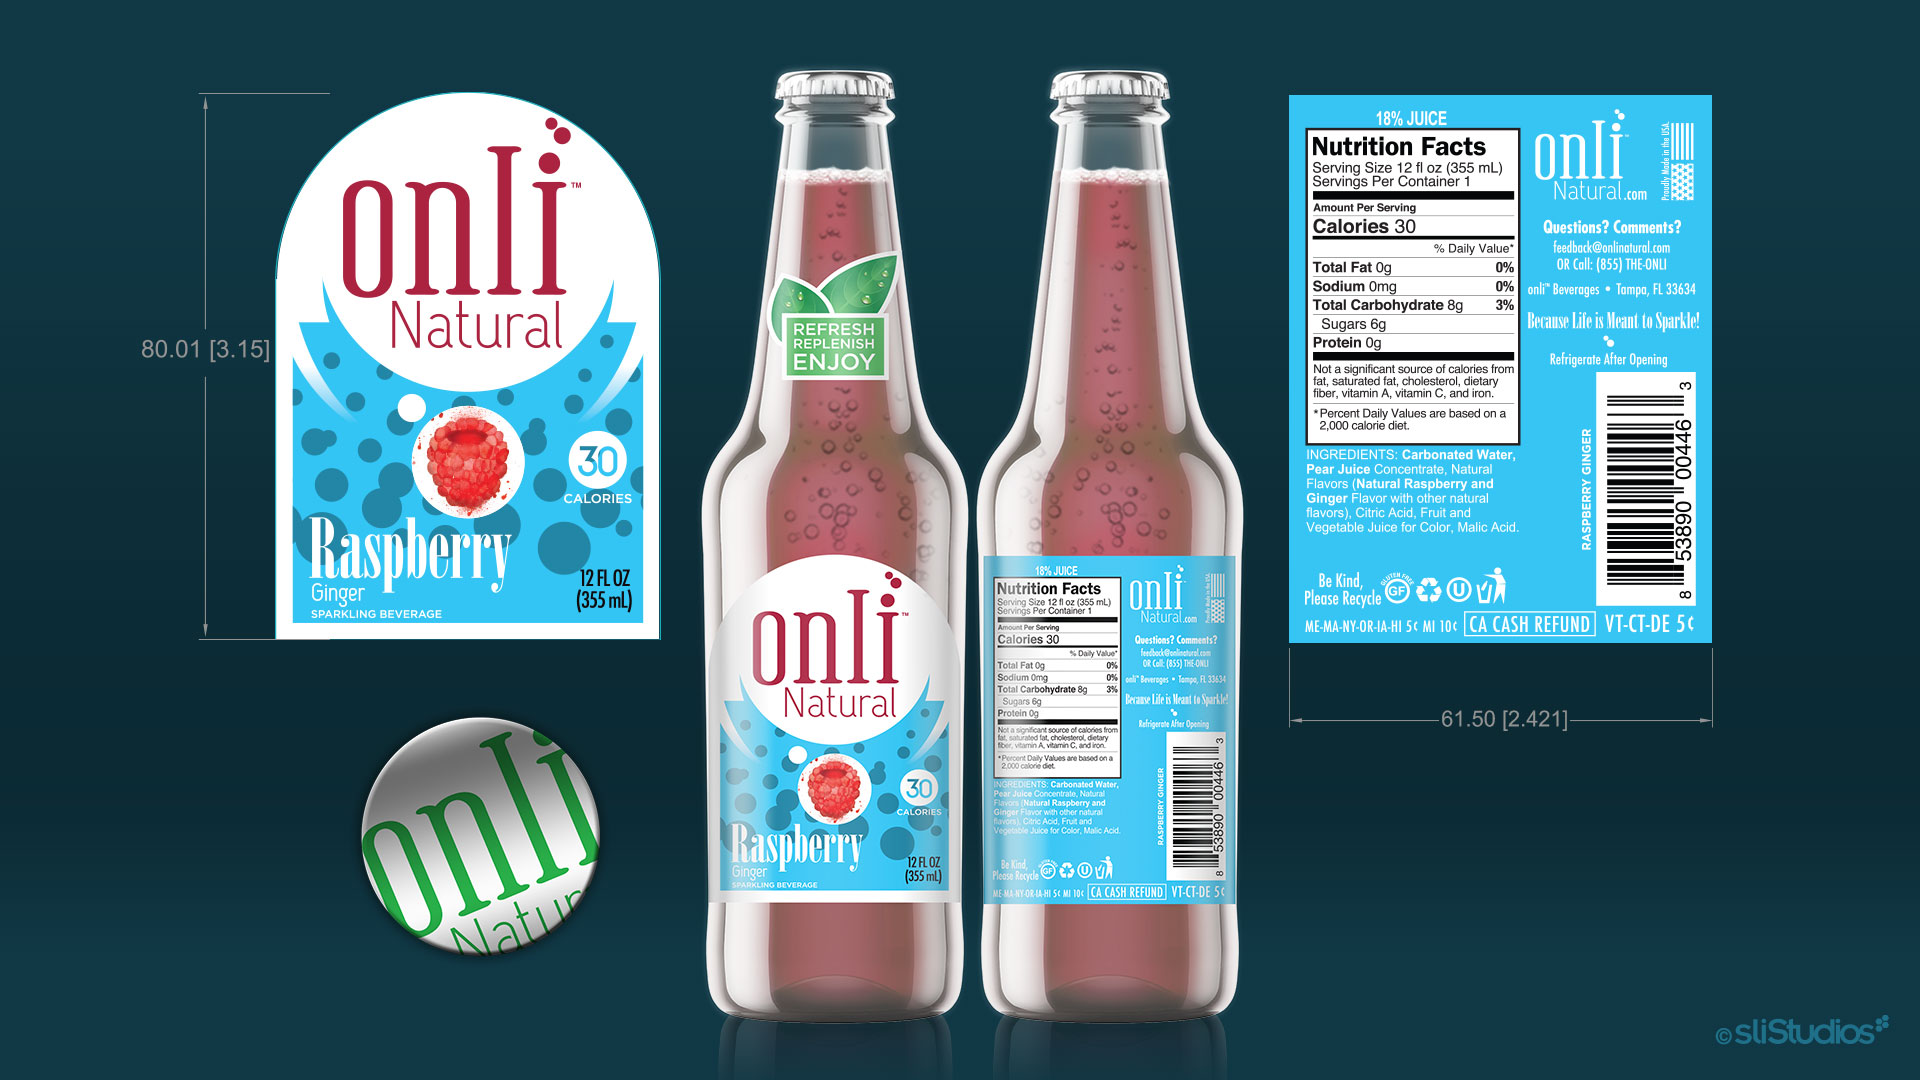 Onli Natural Label and Bottle Cap